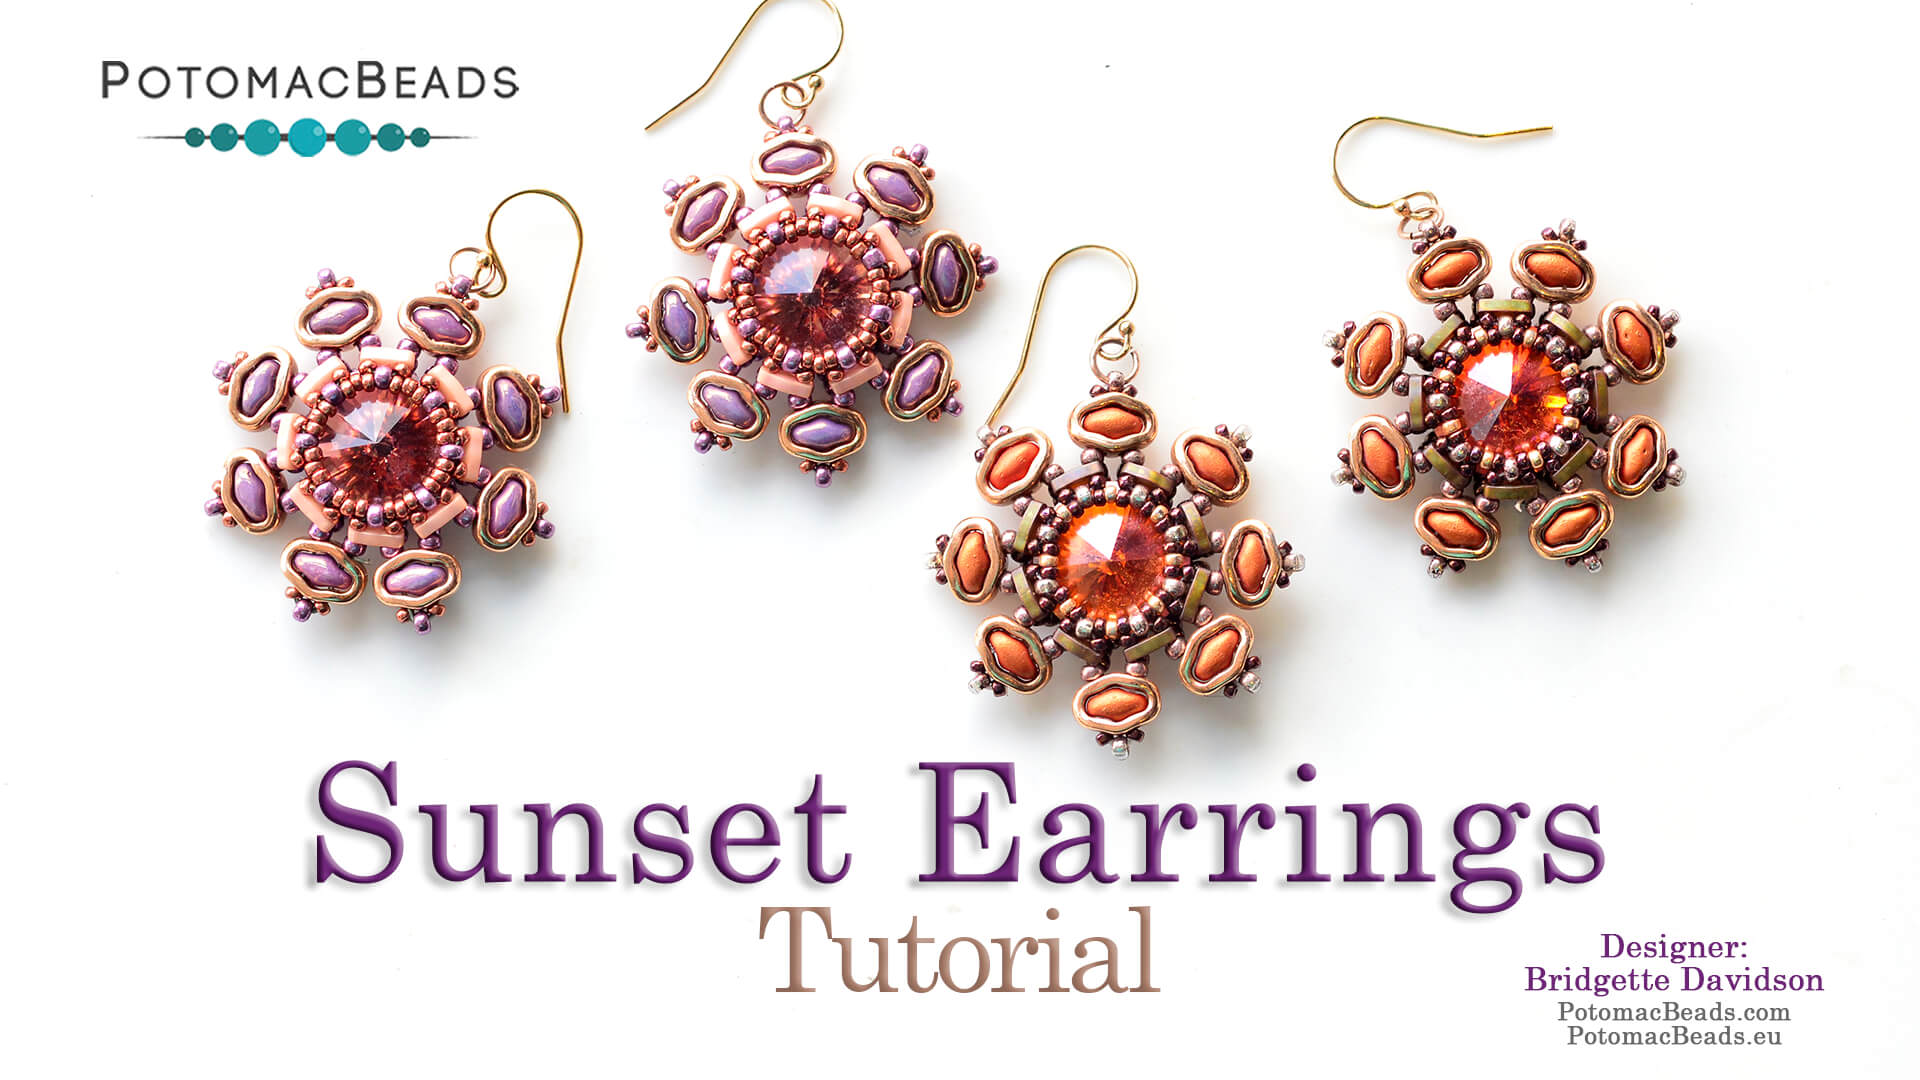 How to Bead Jewelry / Videos Sorted by Beads / RounTrio® & RounTrio® Faceted Bead Videos / Sunset Earrings or Component Tutorial